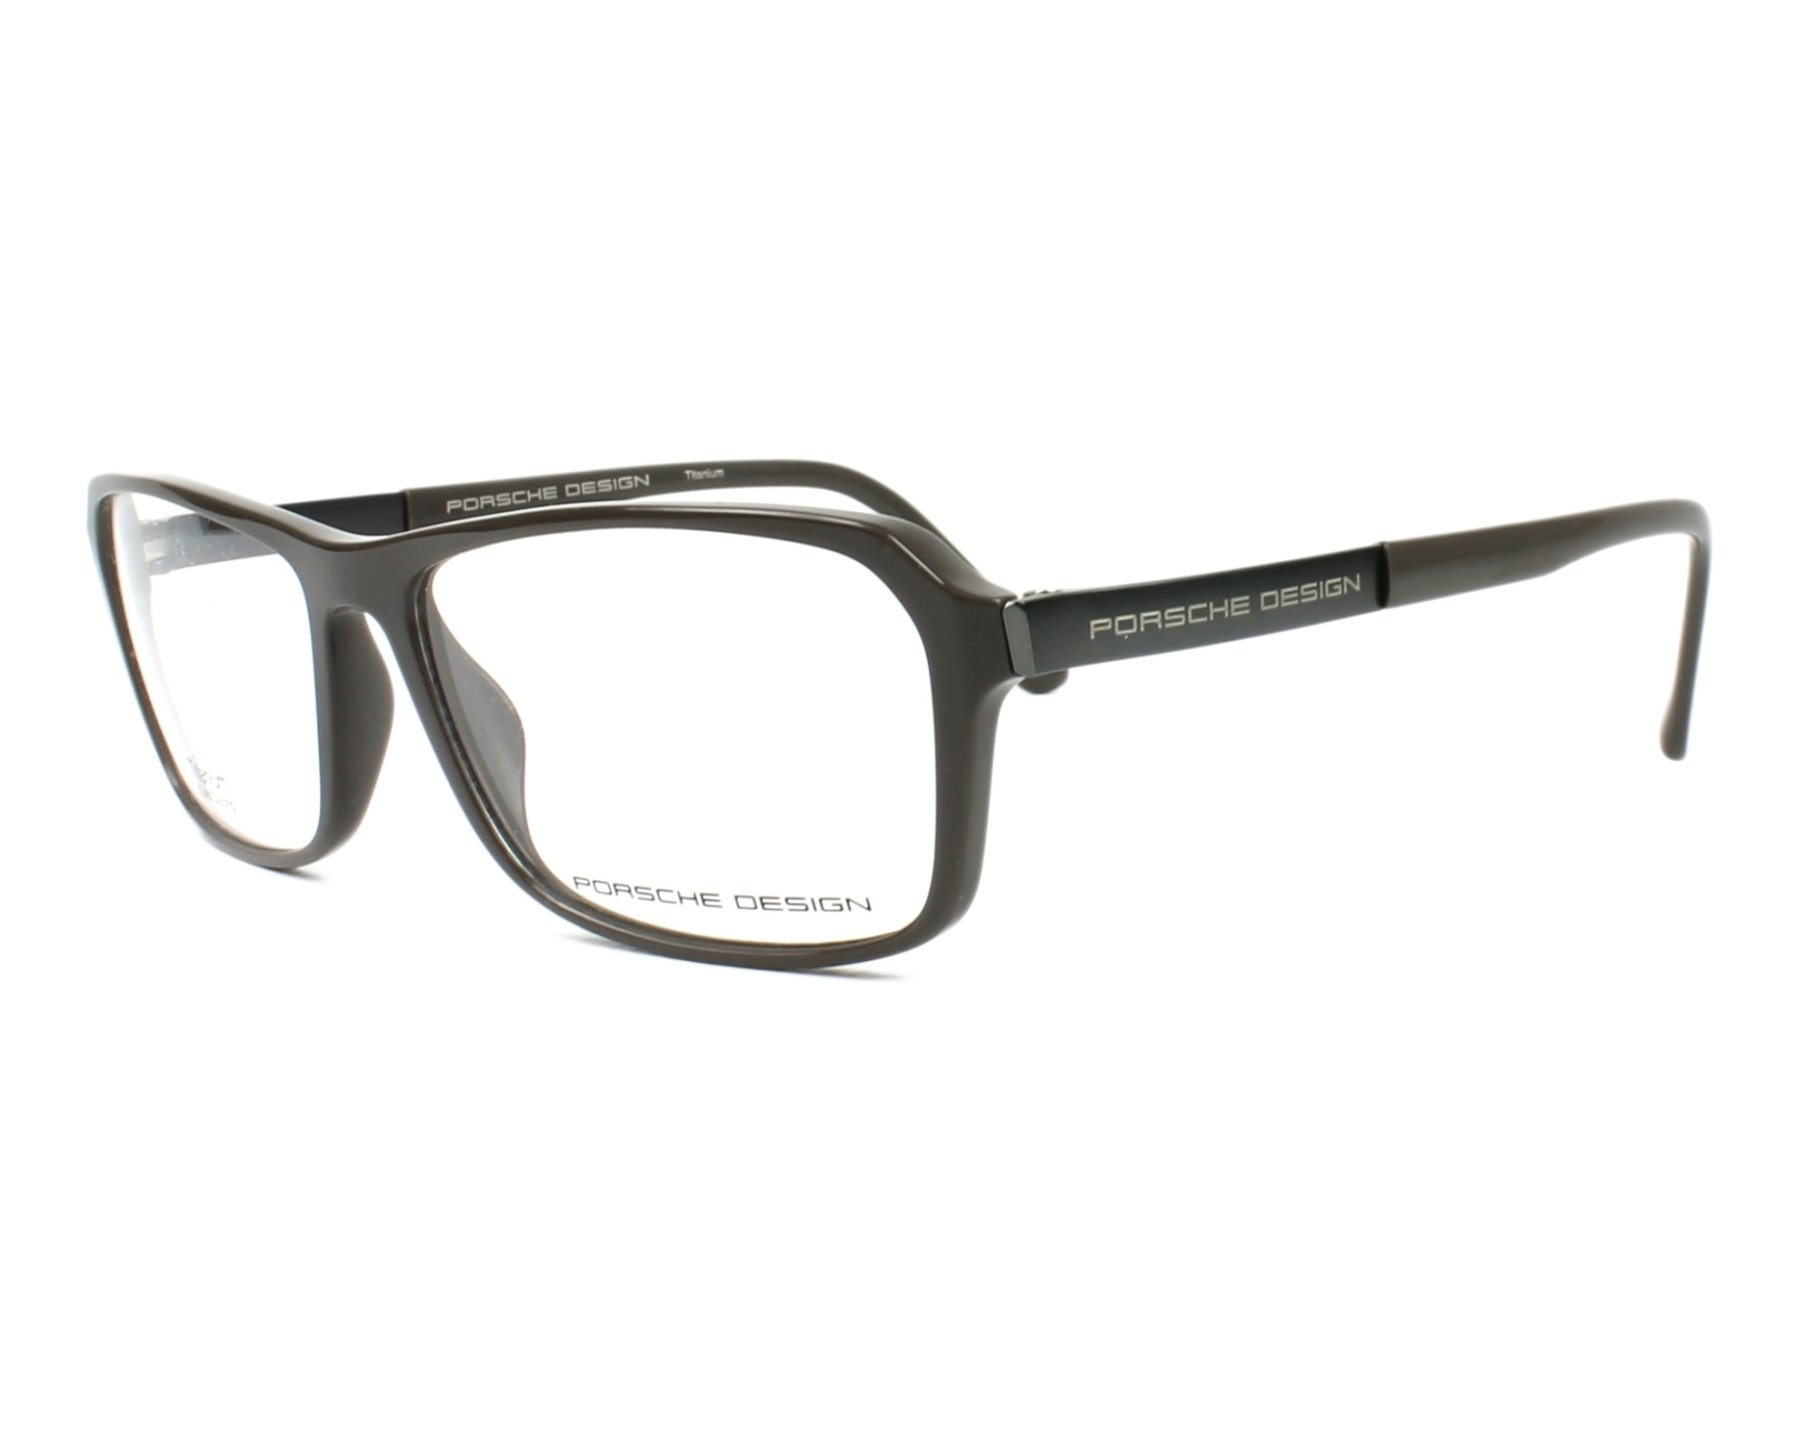 088384333fe3 eyeglasses Porsche Design P-8267 A 55-14 Grey Gun profile view